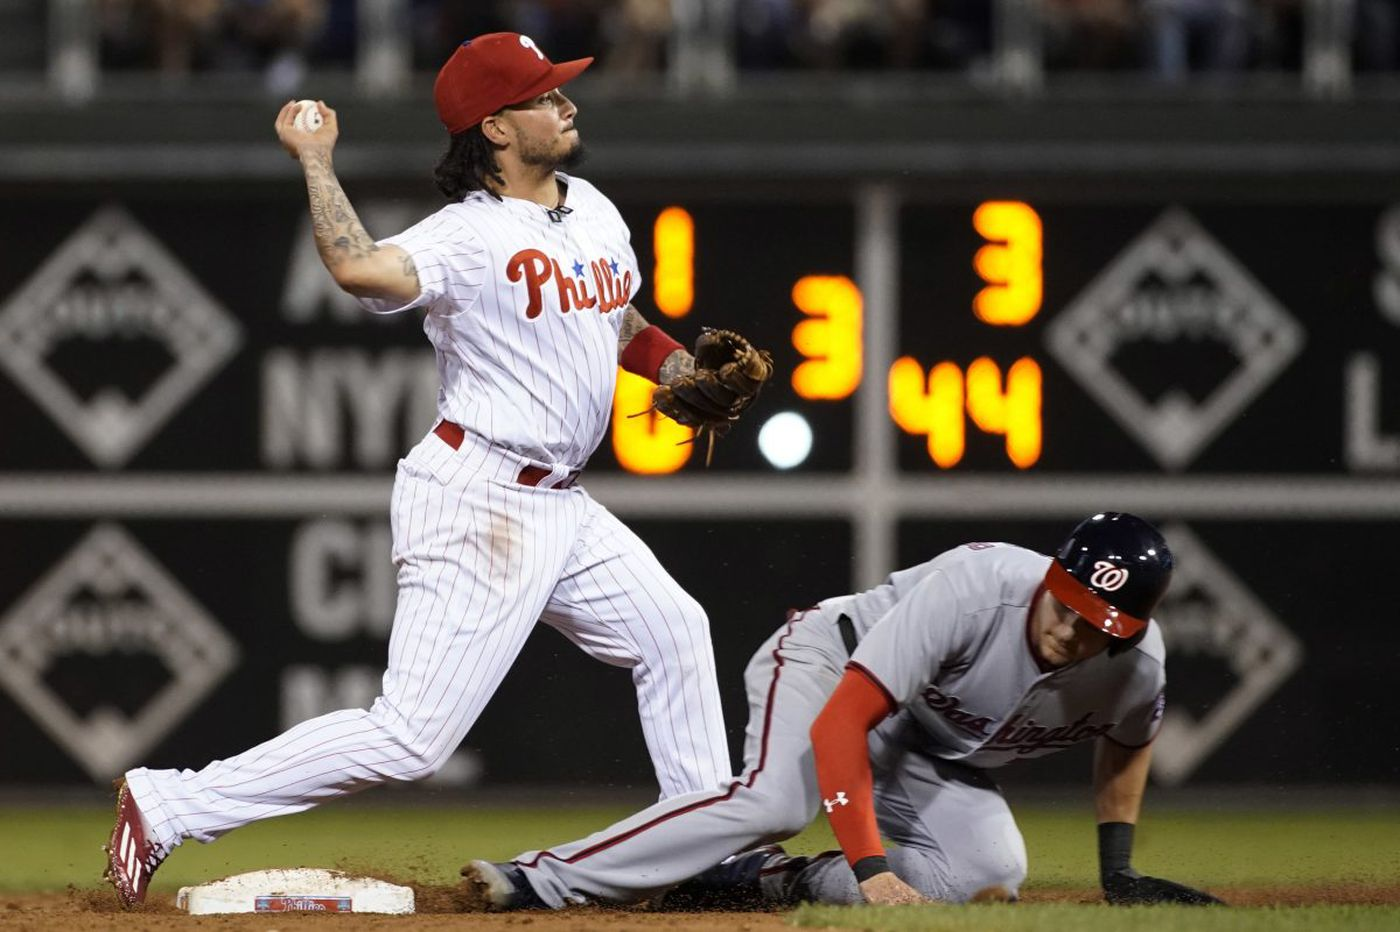 Phillies' Freddy Galvis falls short of Gold Glove